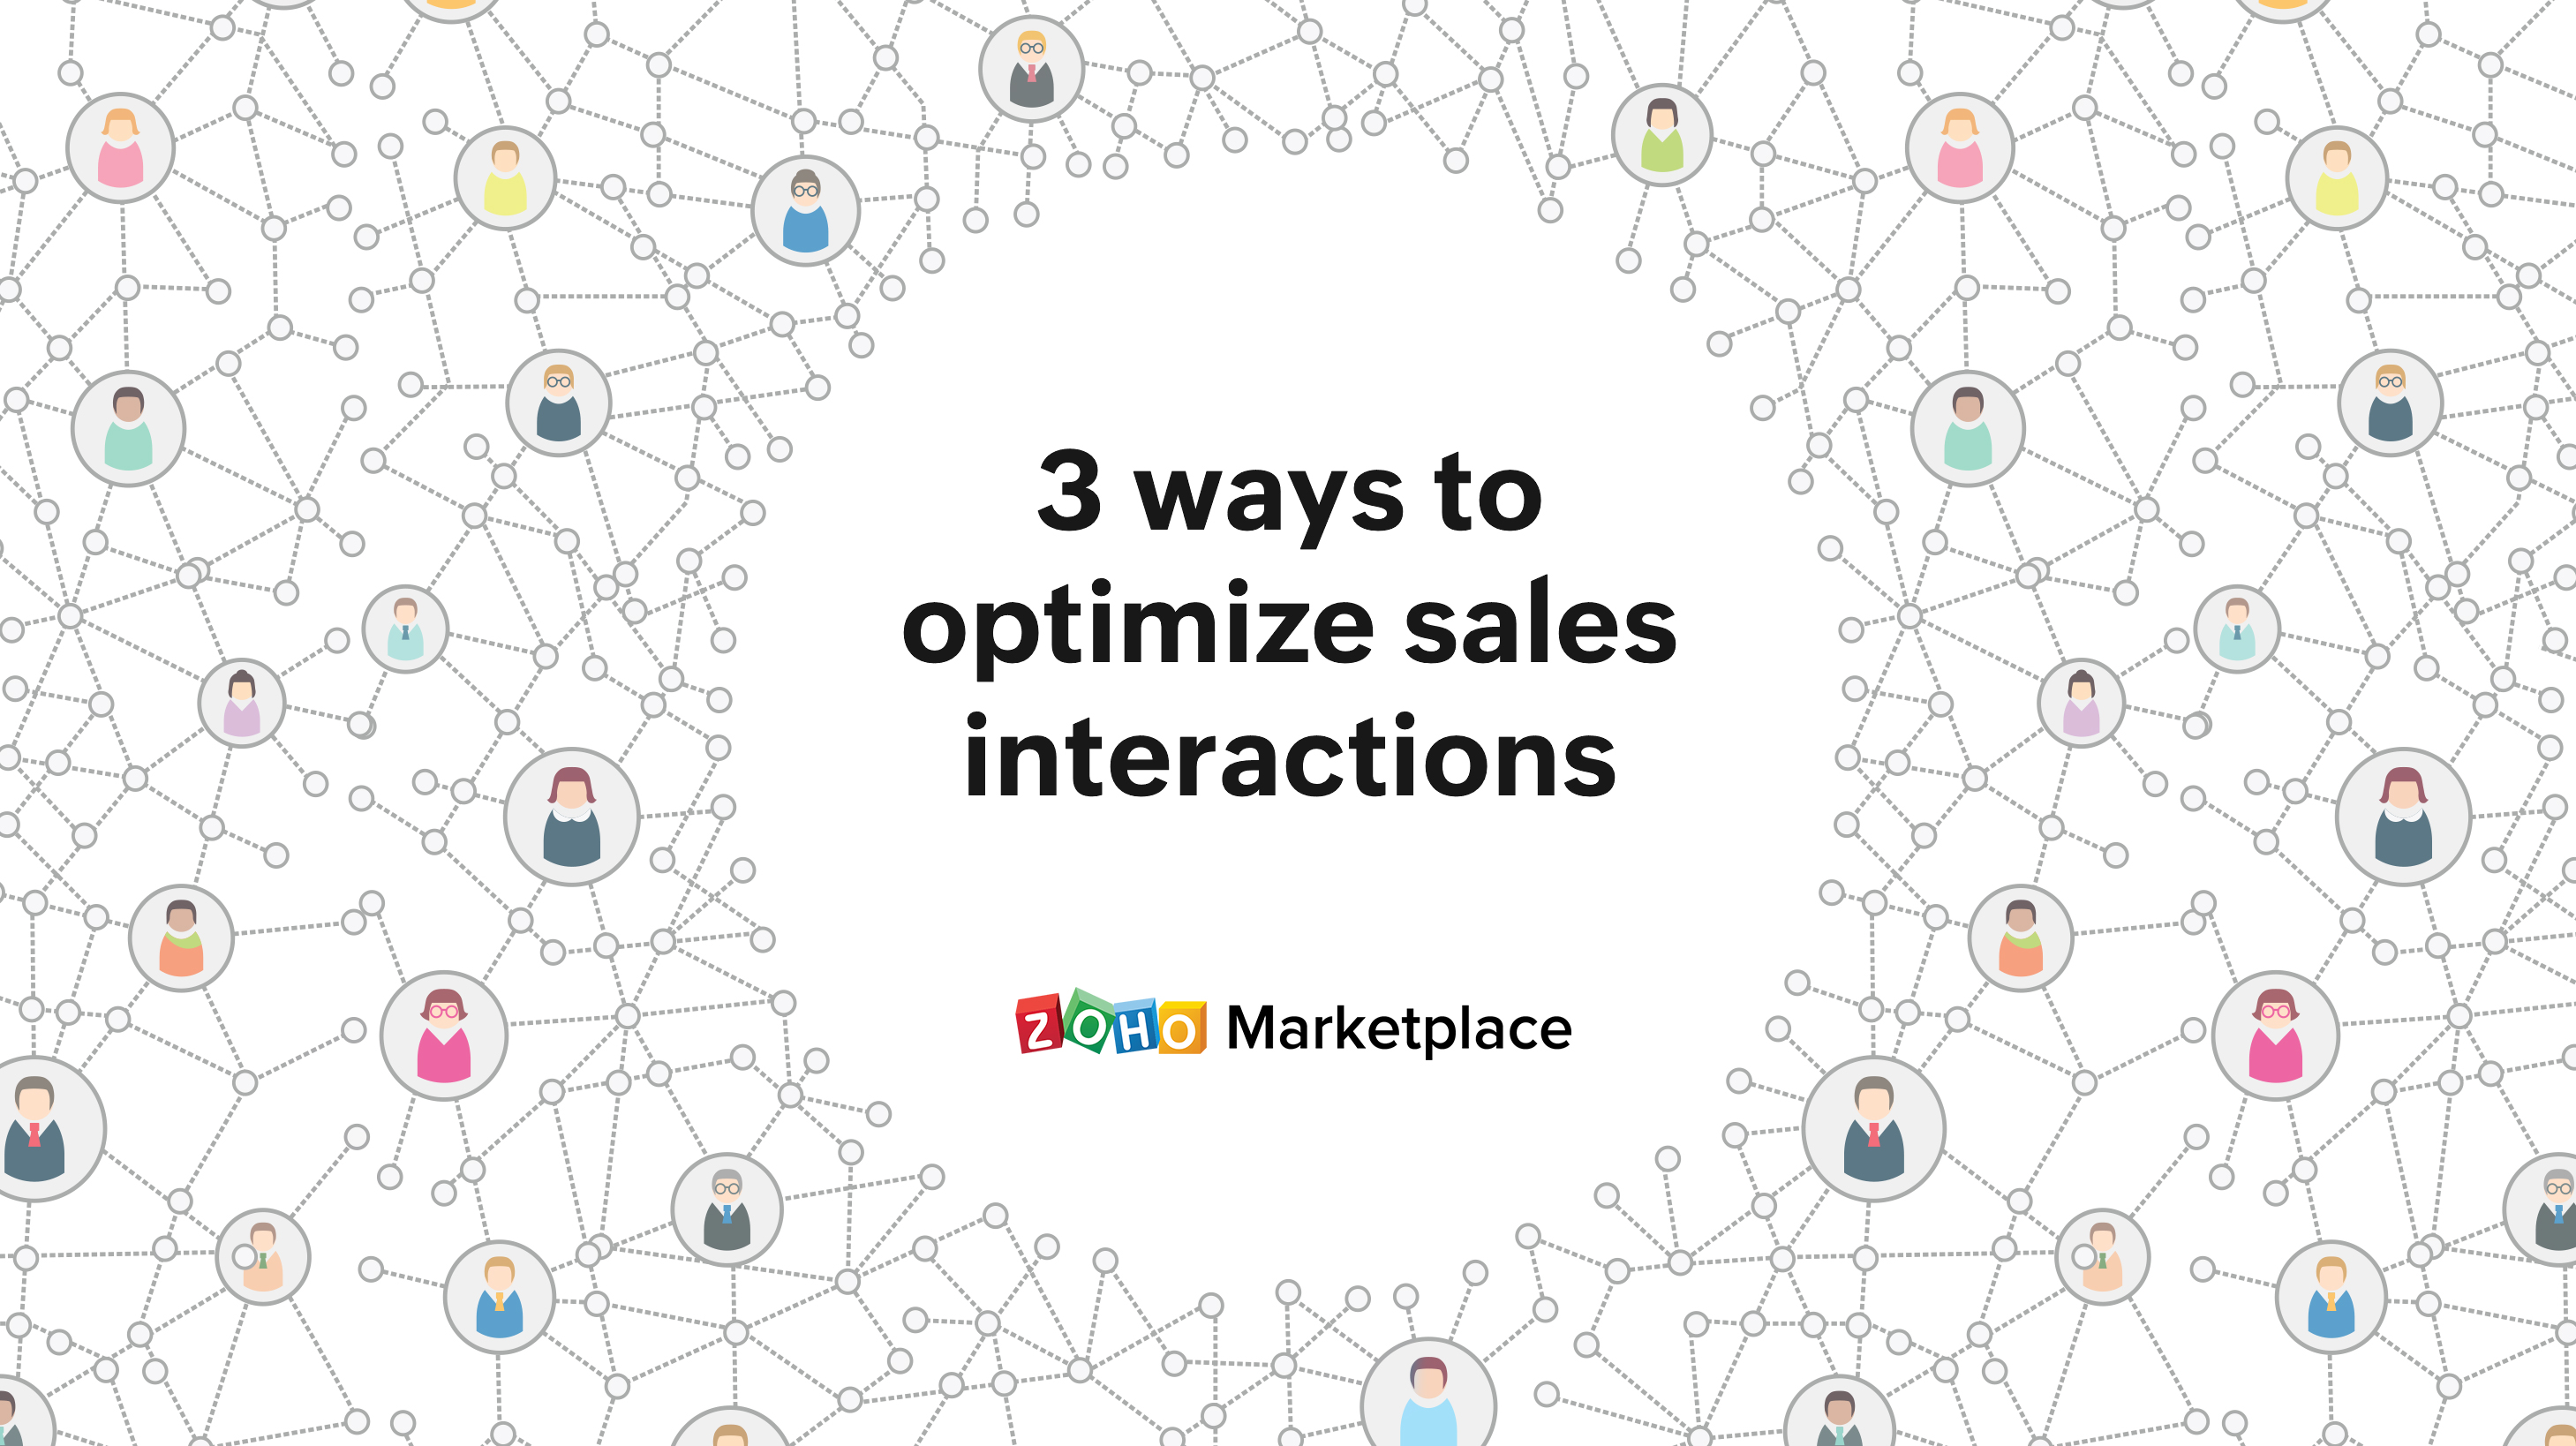 3 ways to optimize sales interactions to give leads the best service